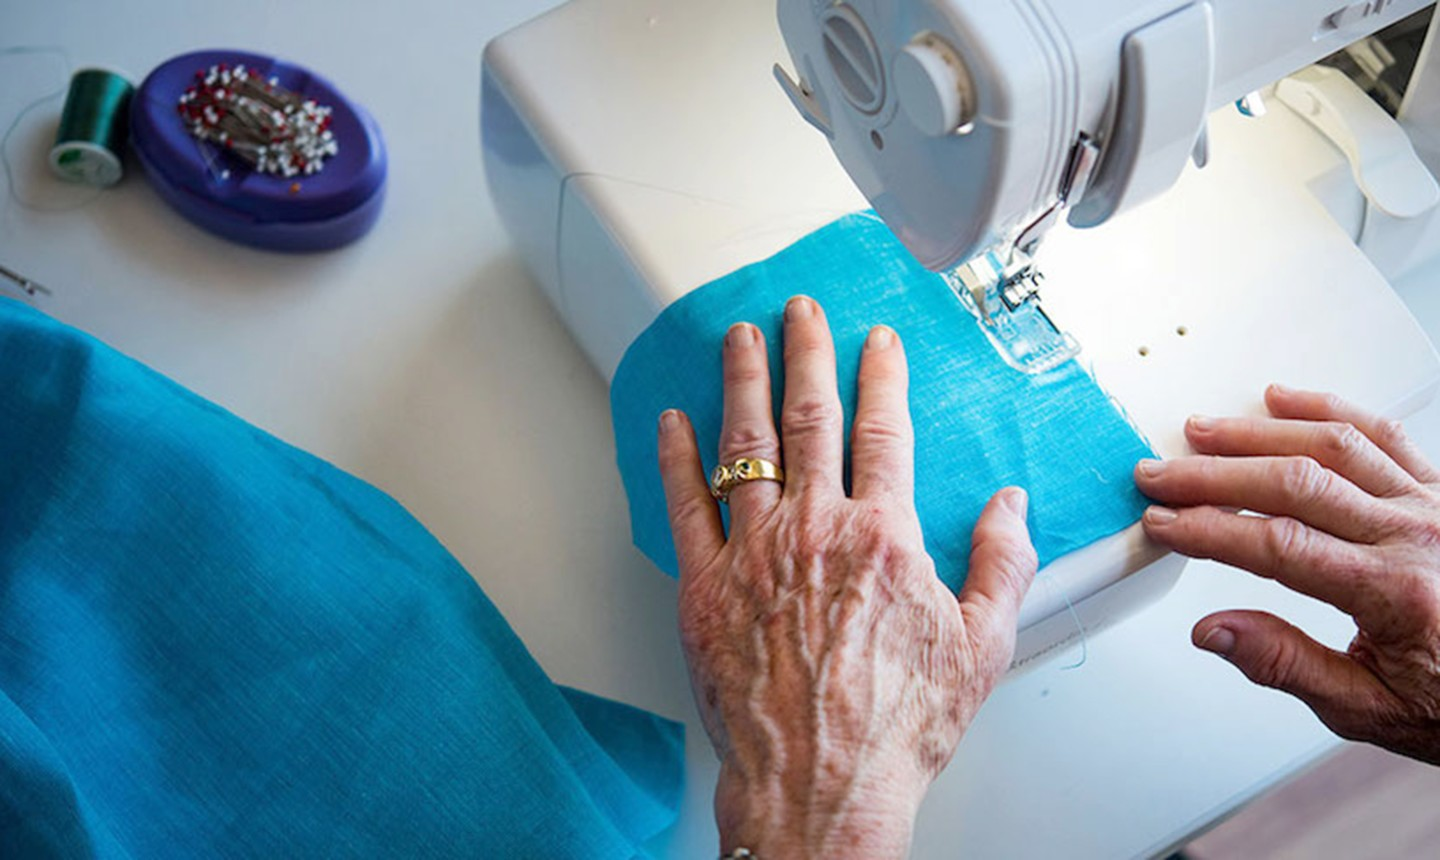 woman using a serger